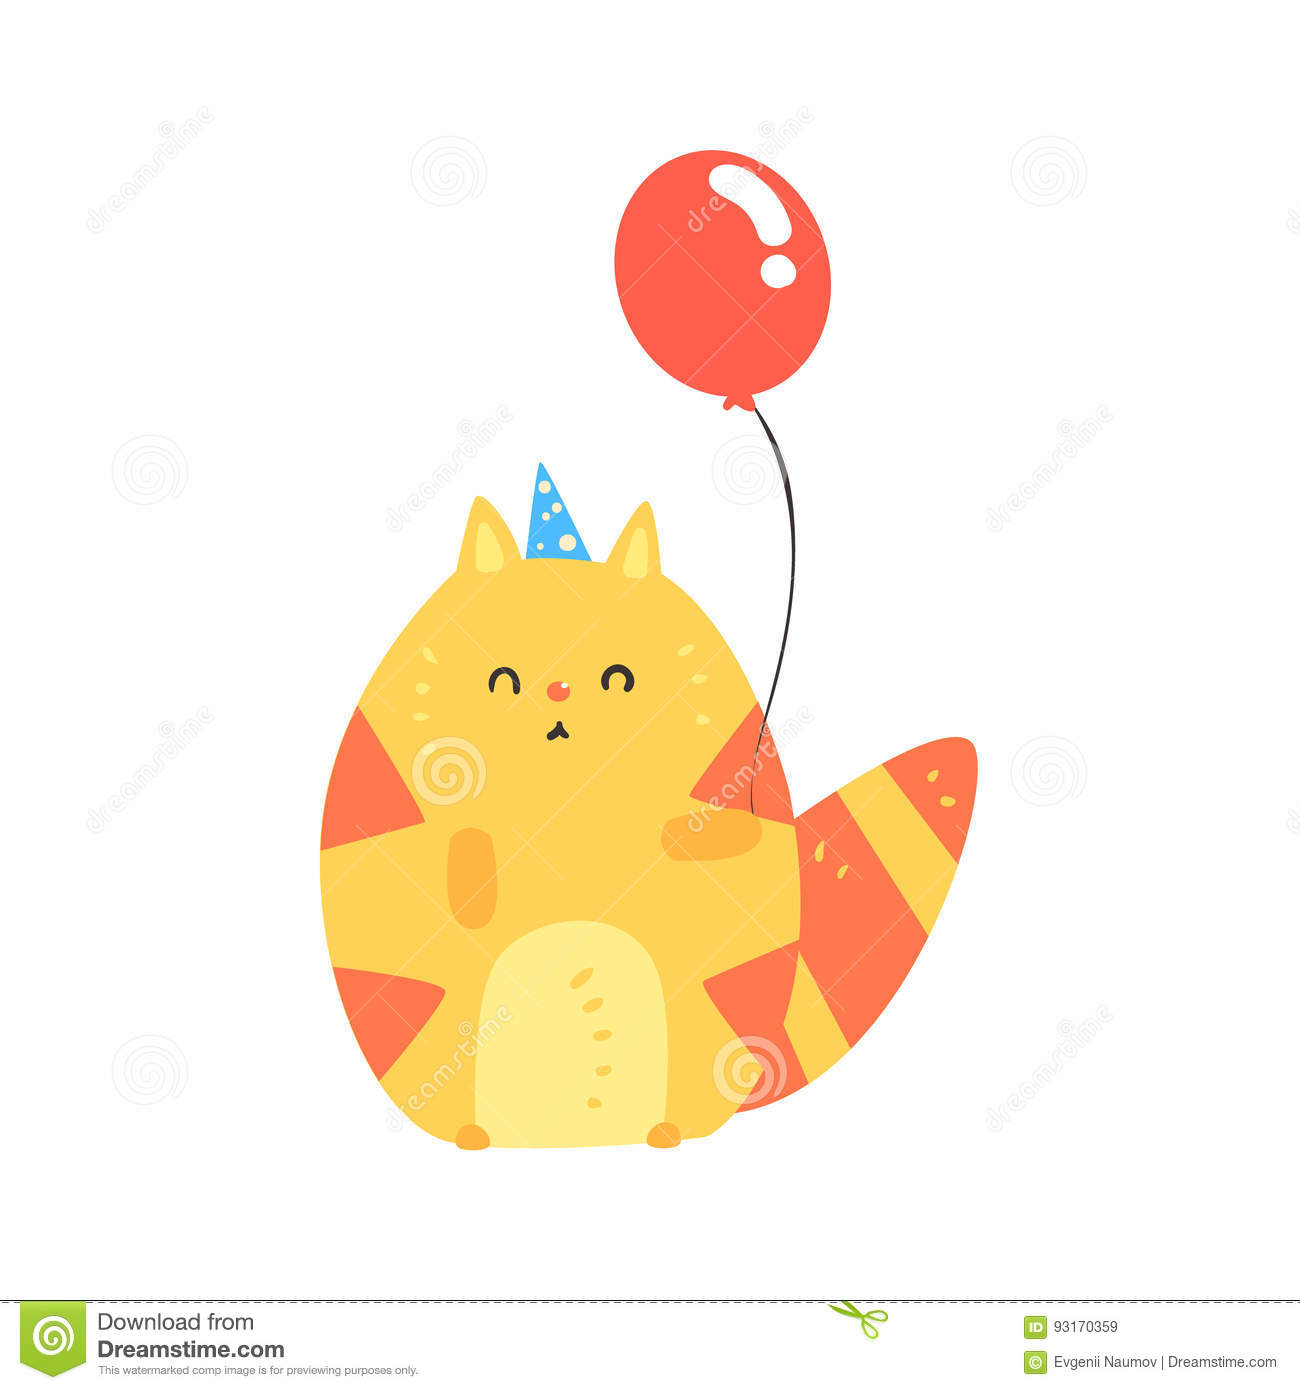 Lovely Cartoon Red Cat In A Blue Party Hat Holding Balloon Happy Birthday Colorful Vector